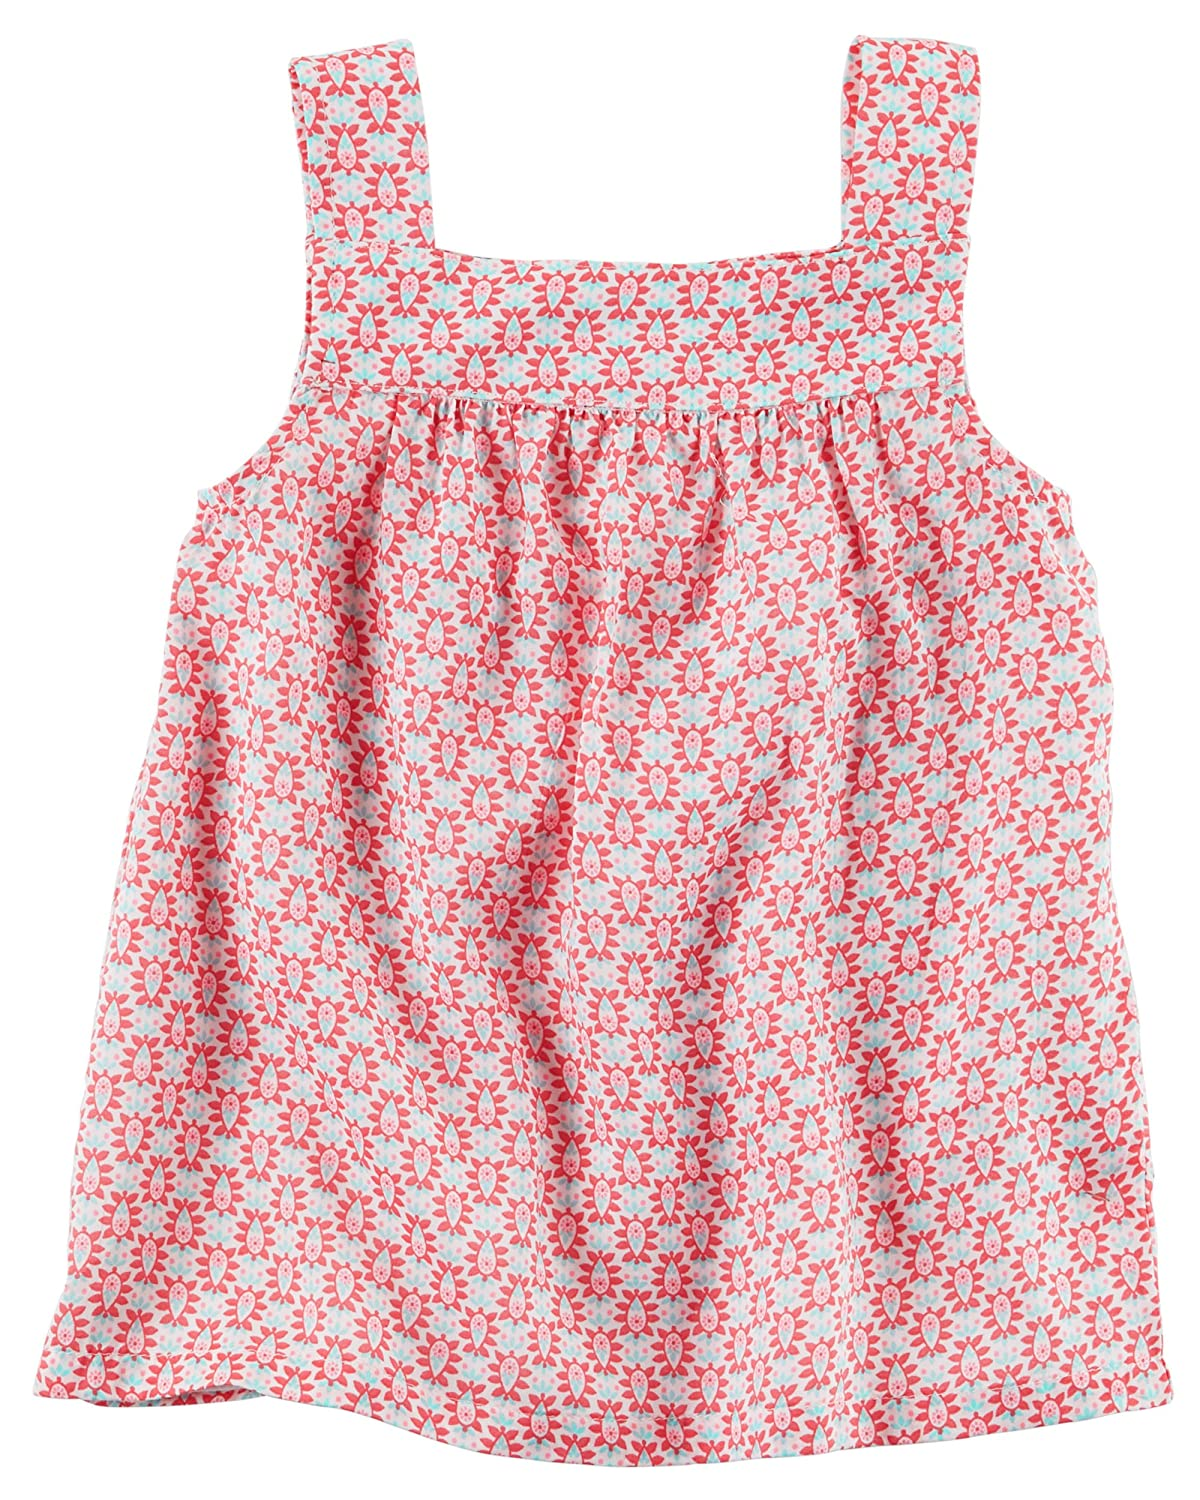 Carters Girls Flowy Printed Tank Pink, 5 Kids